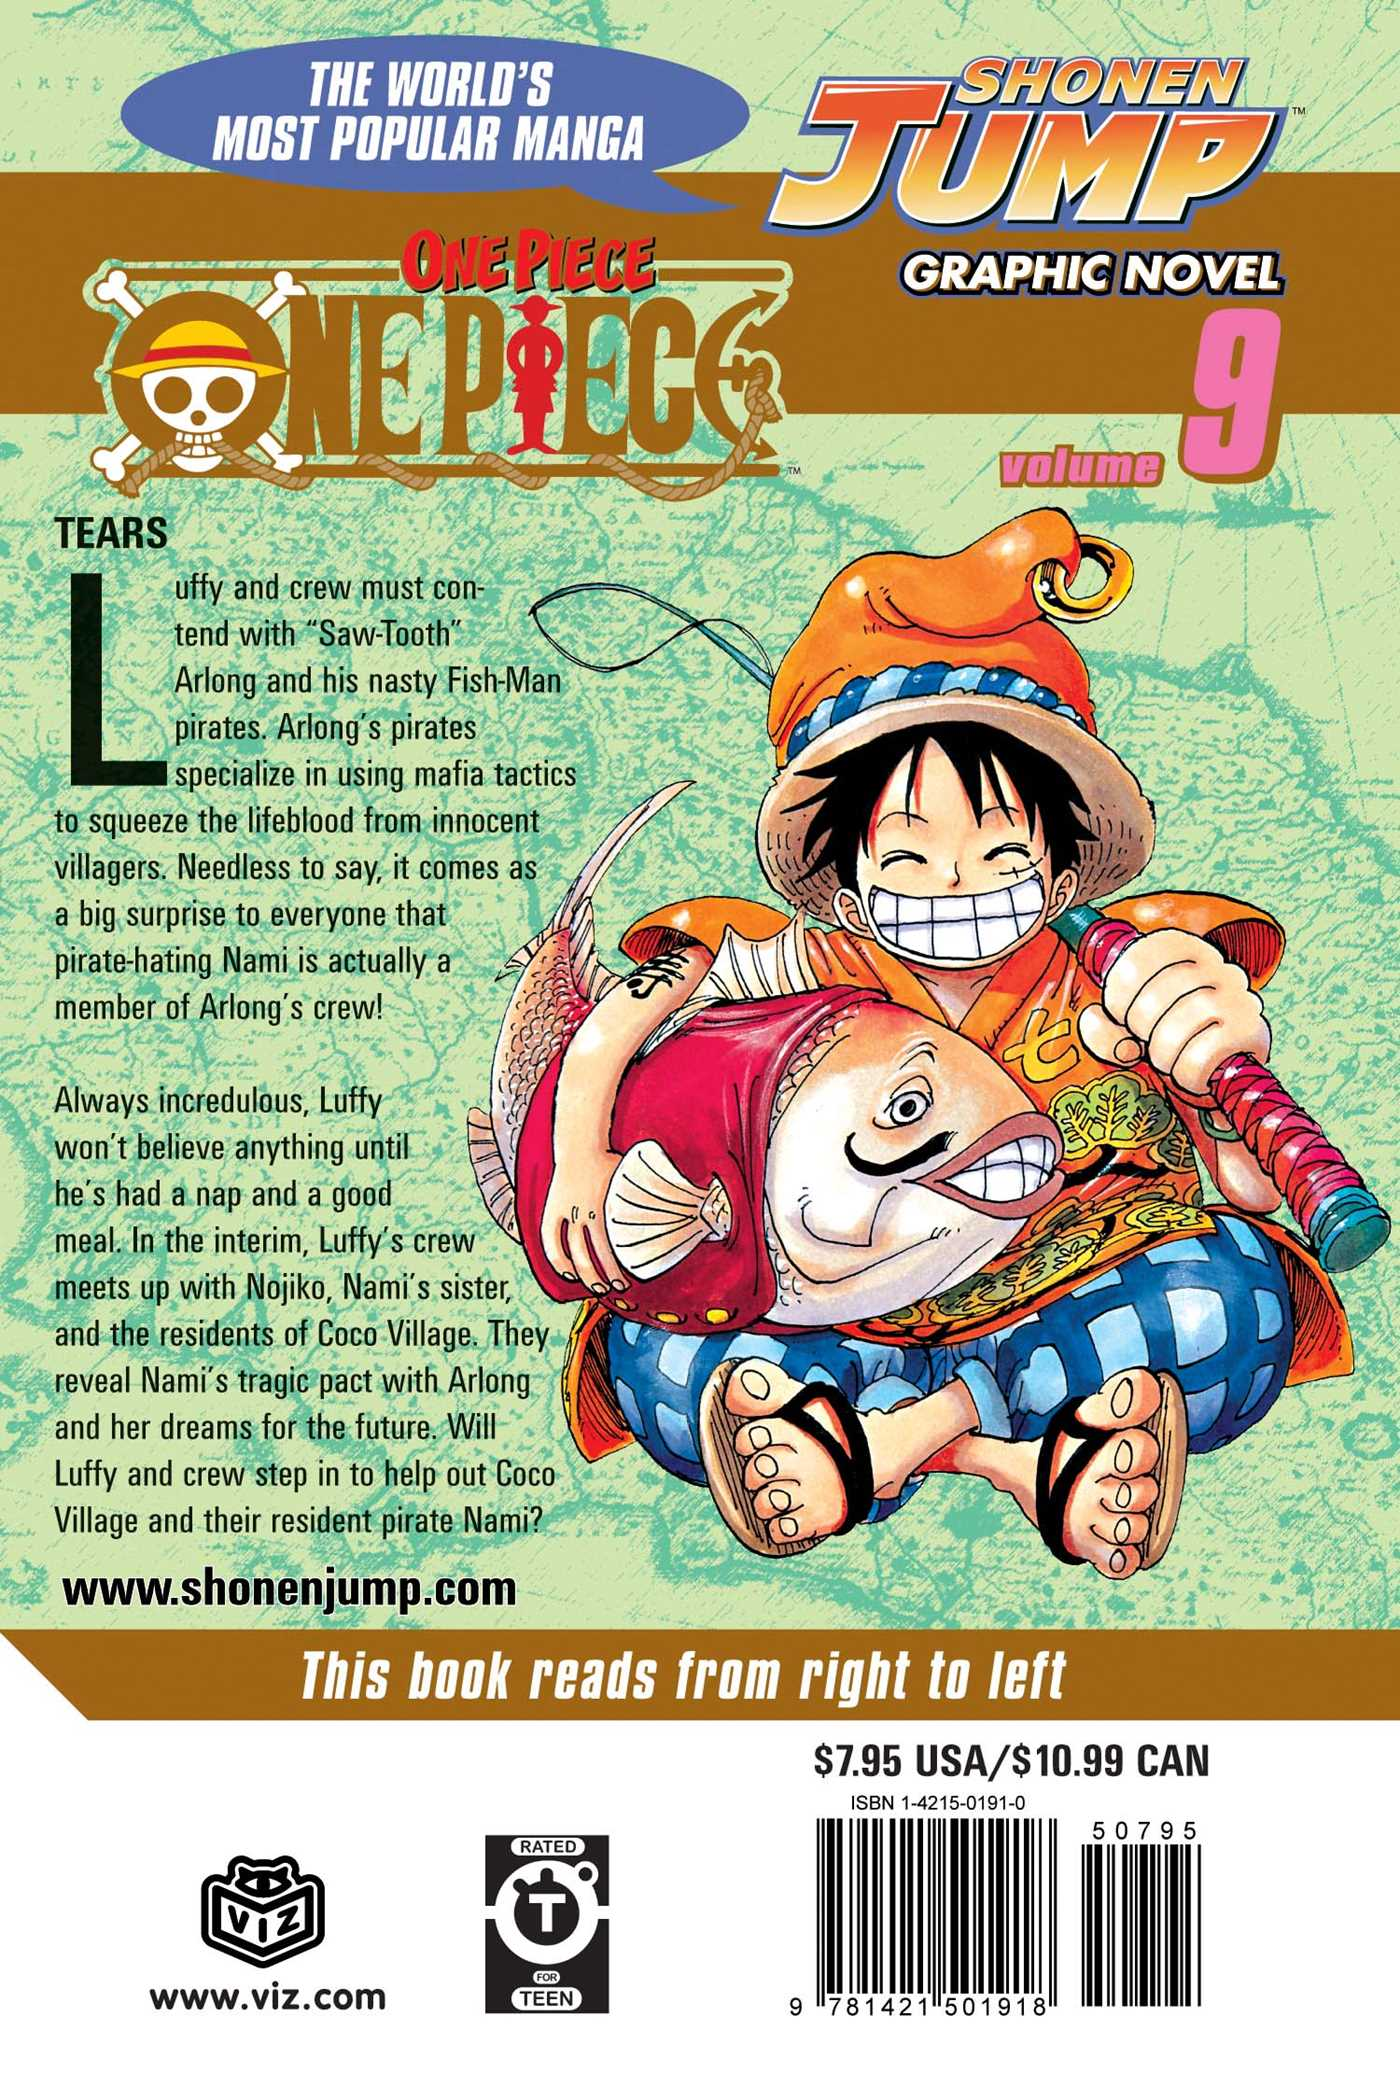 One-piece-vol-9-9781421501918_hr-back